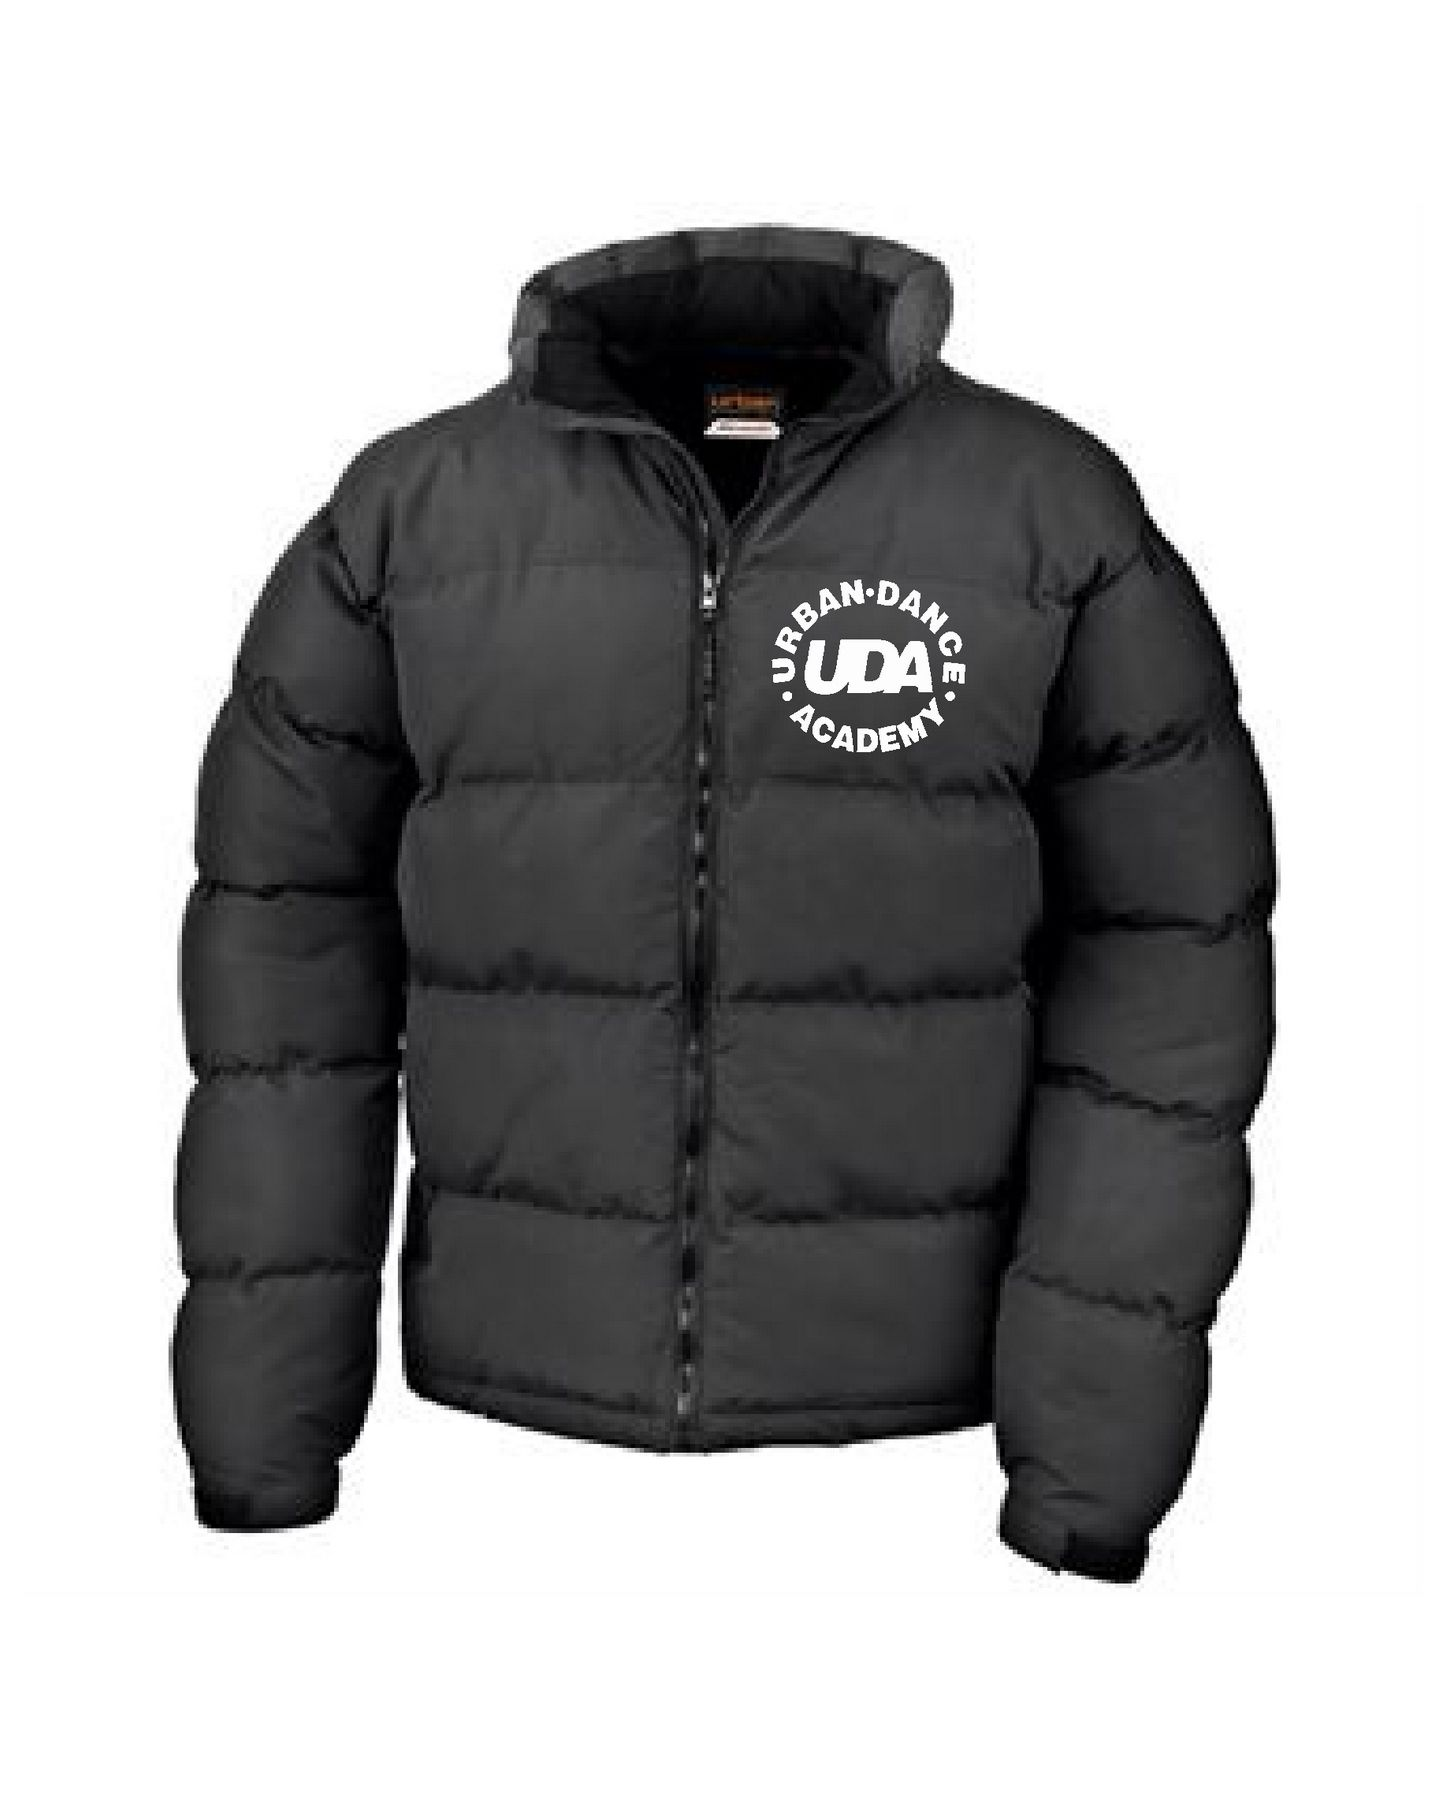 UDA – Puffa Jacket (Black)